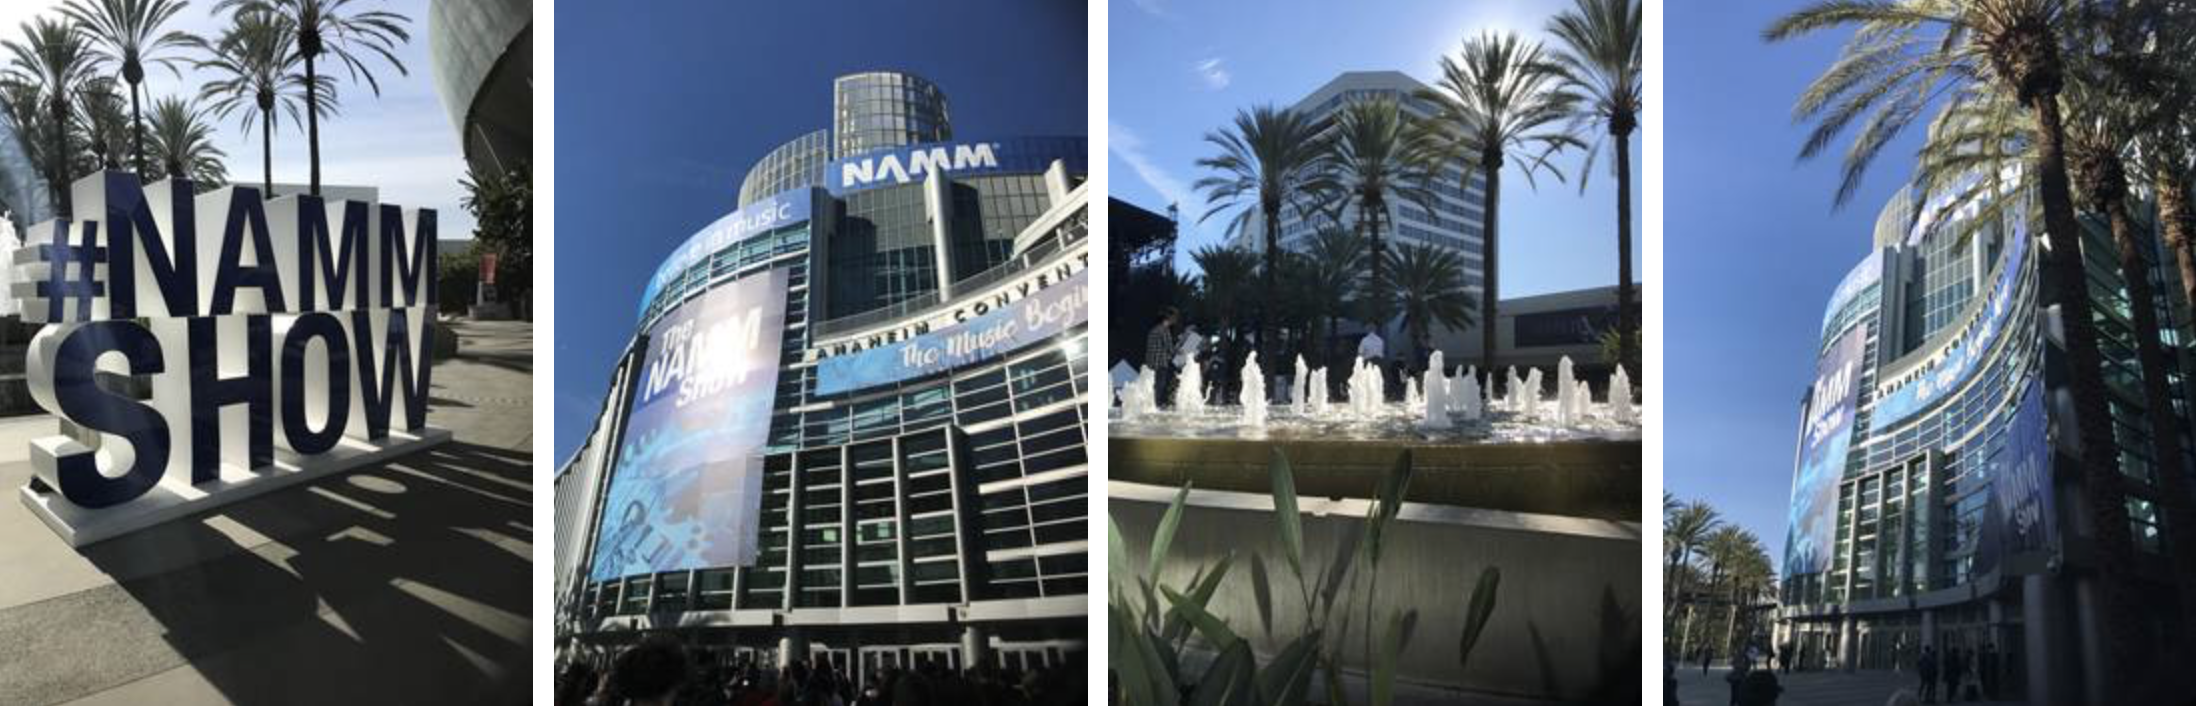 NAMM 2019 Show from Kazbar Systems